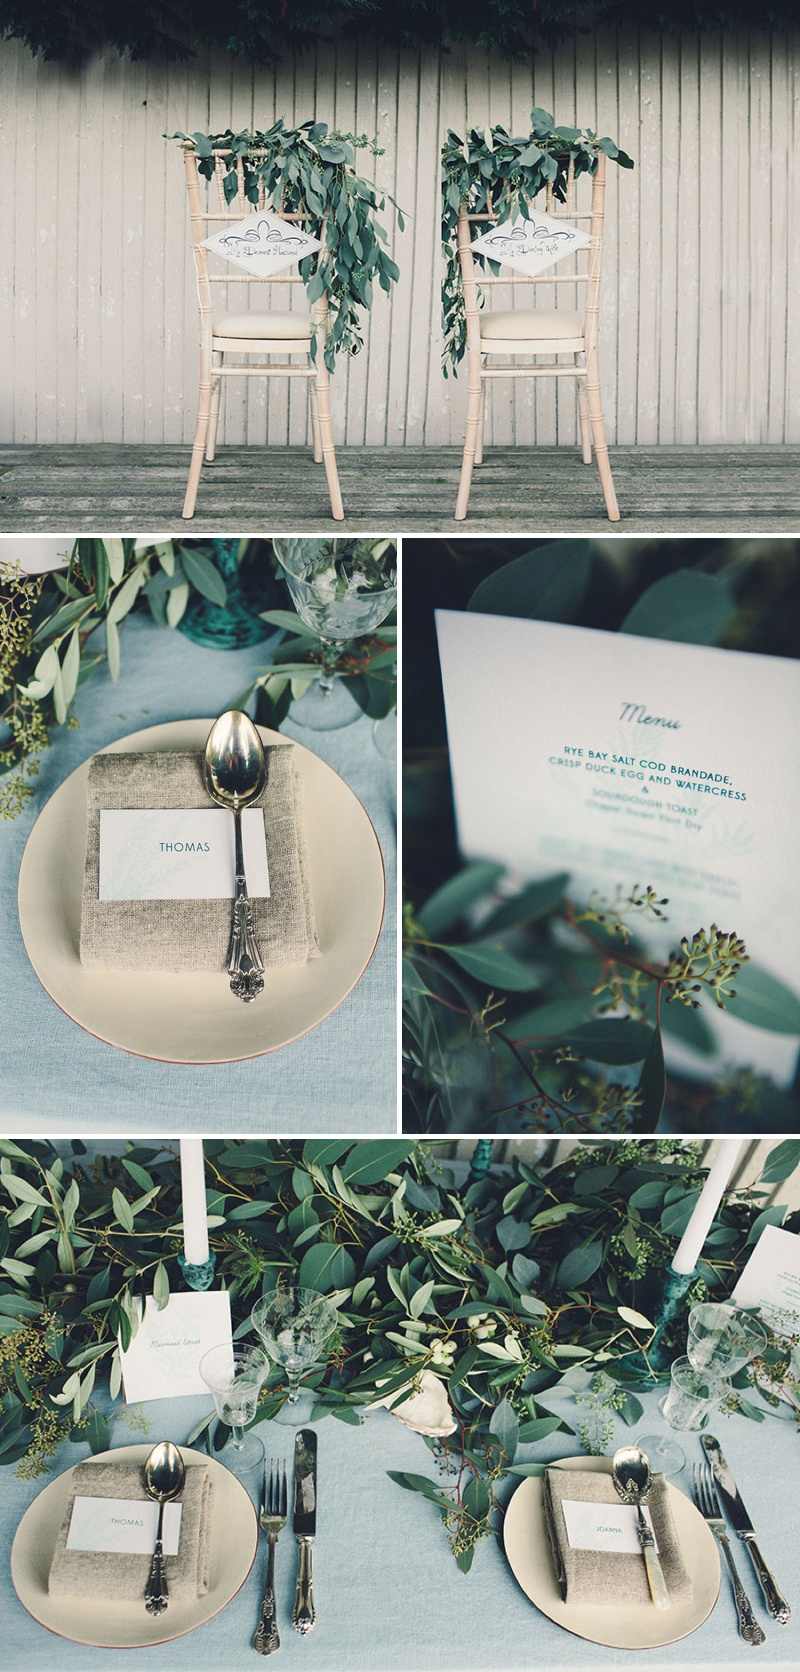 A Coastal Wedding Decor Inspiration Shoot From Rock My Wedding Featuring A Rustic Olive Leaf Table Centrepiece And A Luxury Sequinned Wedding Tablescape._0001